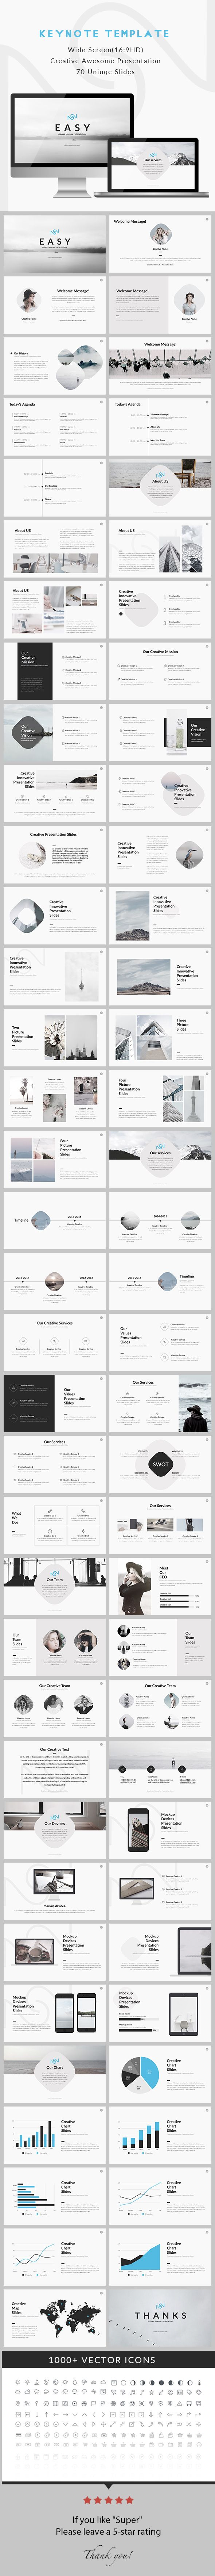 Easy  Creative Minimal Keynote Presentation  #introduction #green • Download ➝ https://graphicriver.net/item/easy-creative-minimal-keynote-presentation/18355428?ref=pxcr